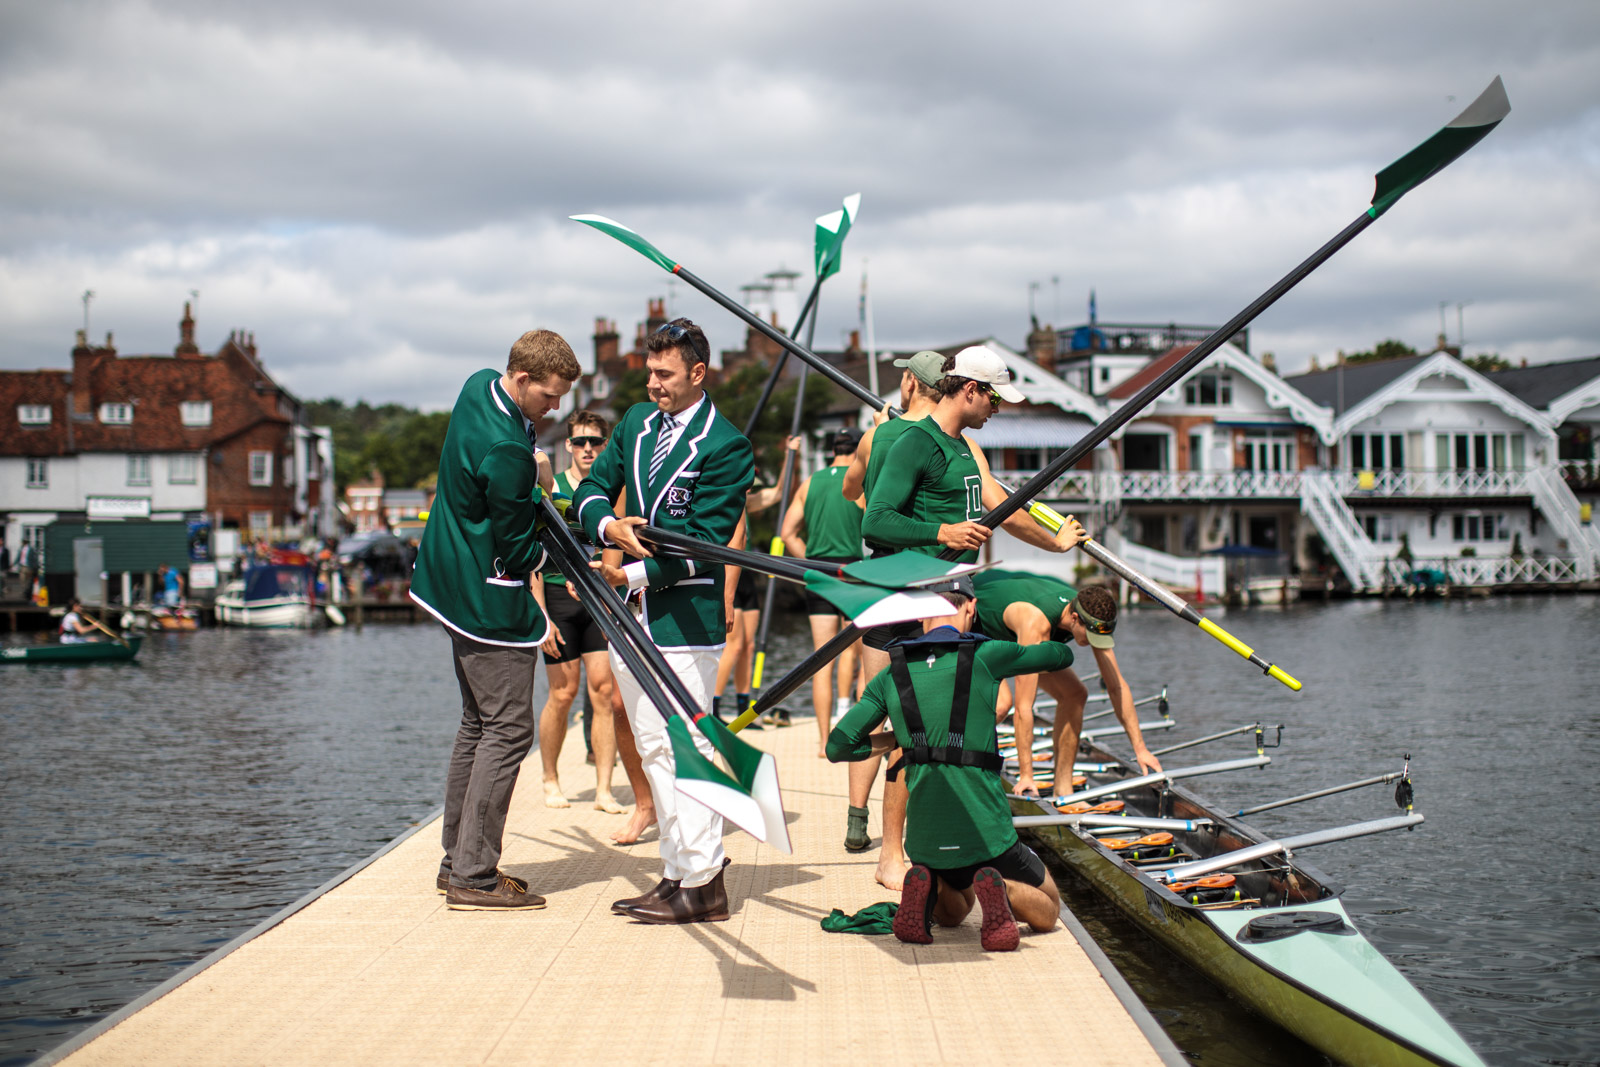 A rowing crew prepare ahead of a race at the Henley Royal Regatta on June 30, 2017 in Henley-on-Thames.